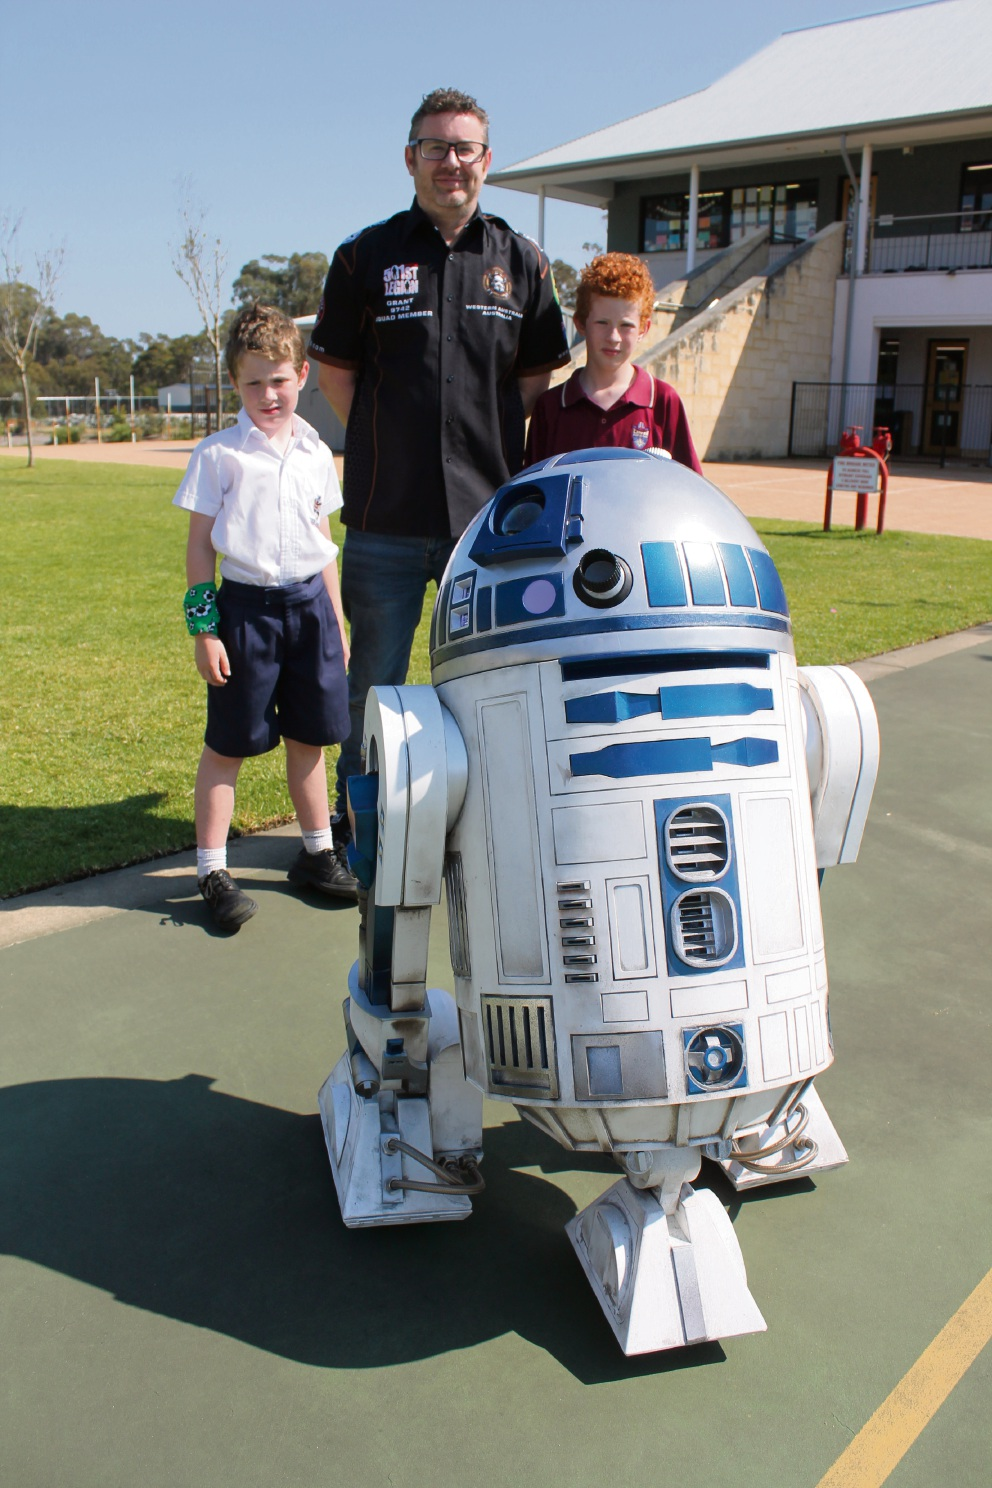 James, Grant and Matthew Thomson with their R2D2 at Peter Carnley Anglican Community School last week.